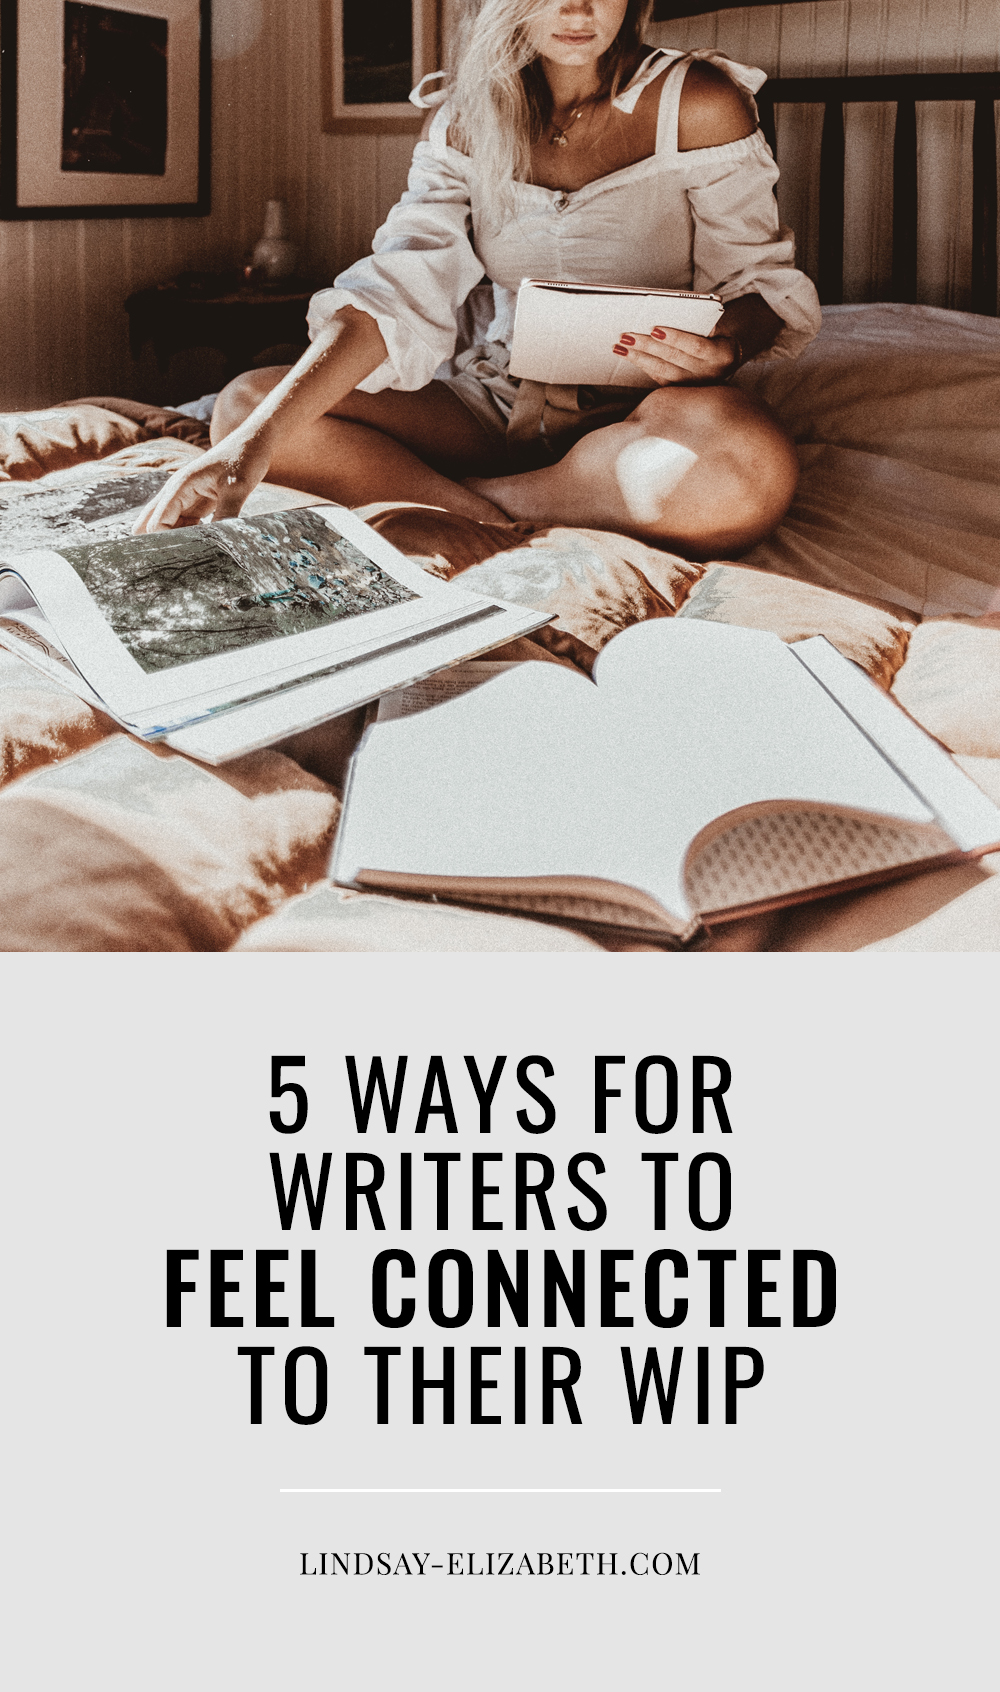 Struggling to fully connect with your work-in-progress? Throughout the long process that is writing a novel, you're bound to lose that sense of connection with your story at least a few times - it's totally normal. Try these easy tips to nurture, deepen, and reignite the connection whenever you feel it slipping. #writers #authors #writingadvice #writingtips #writinganovel